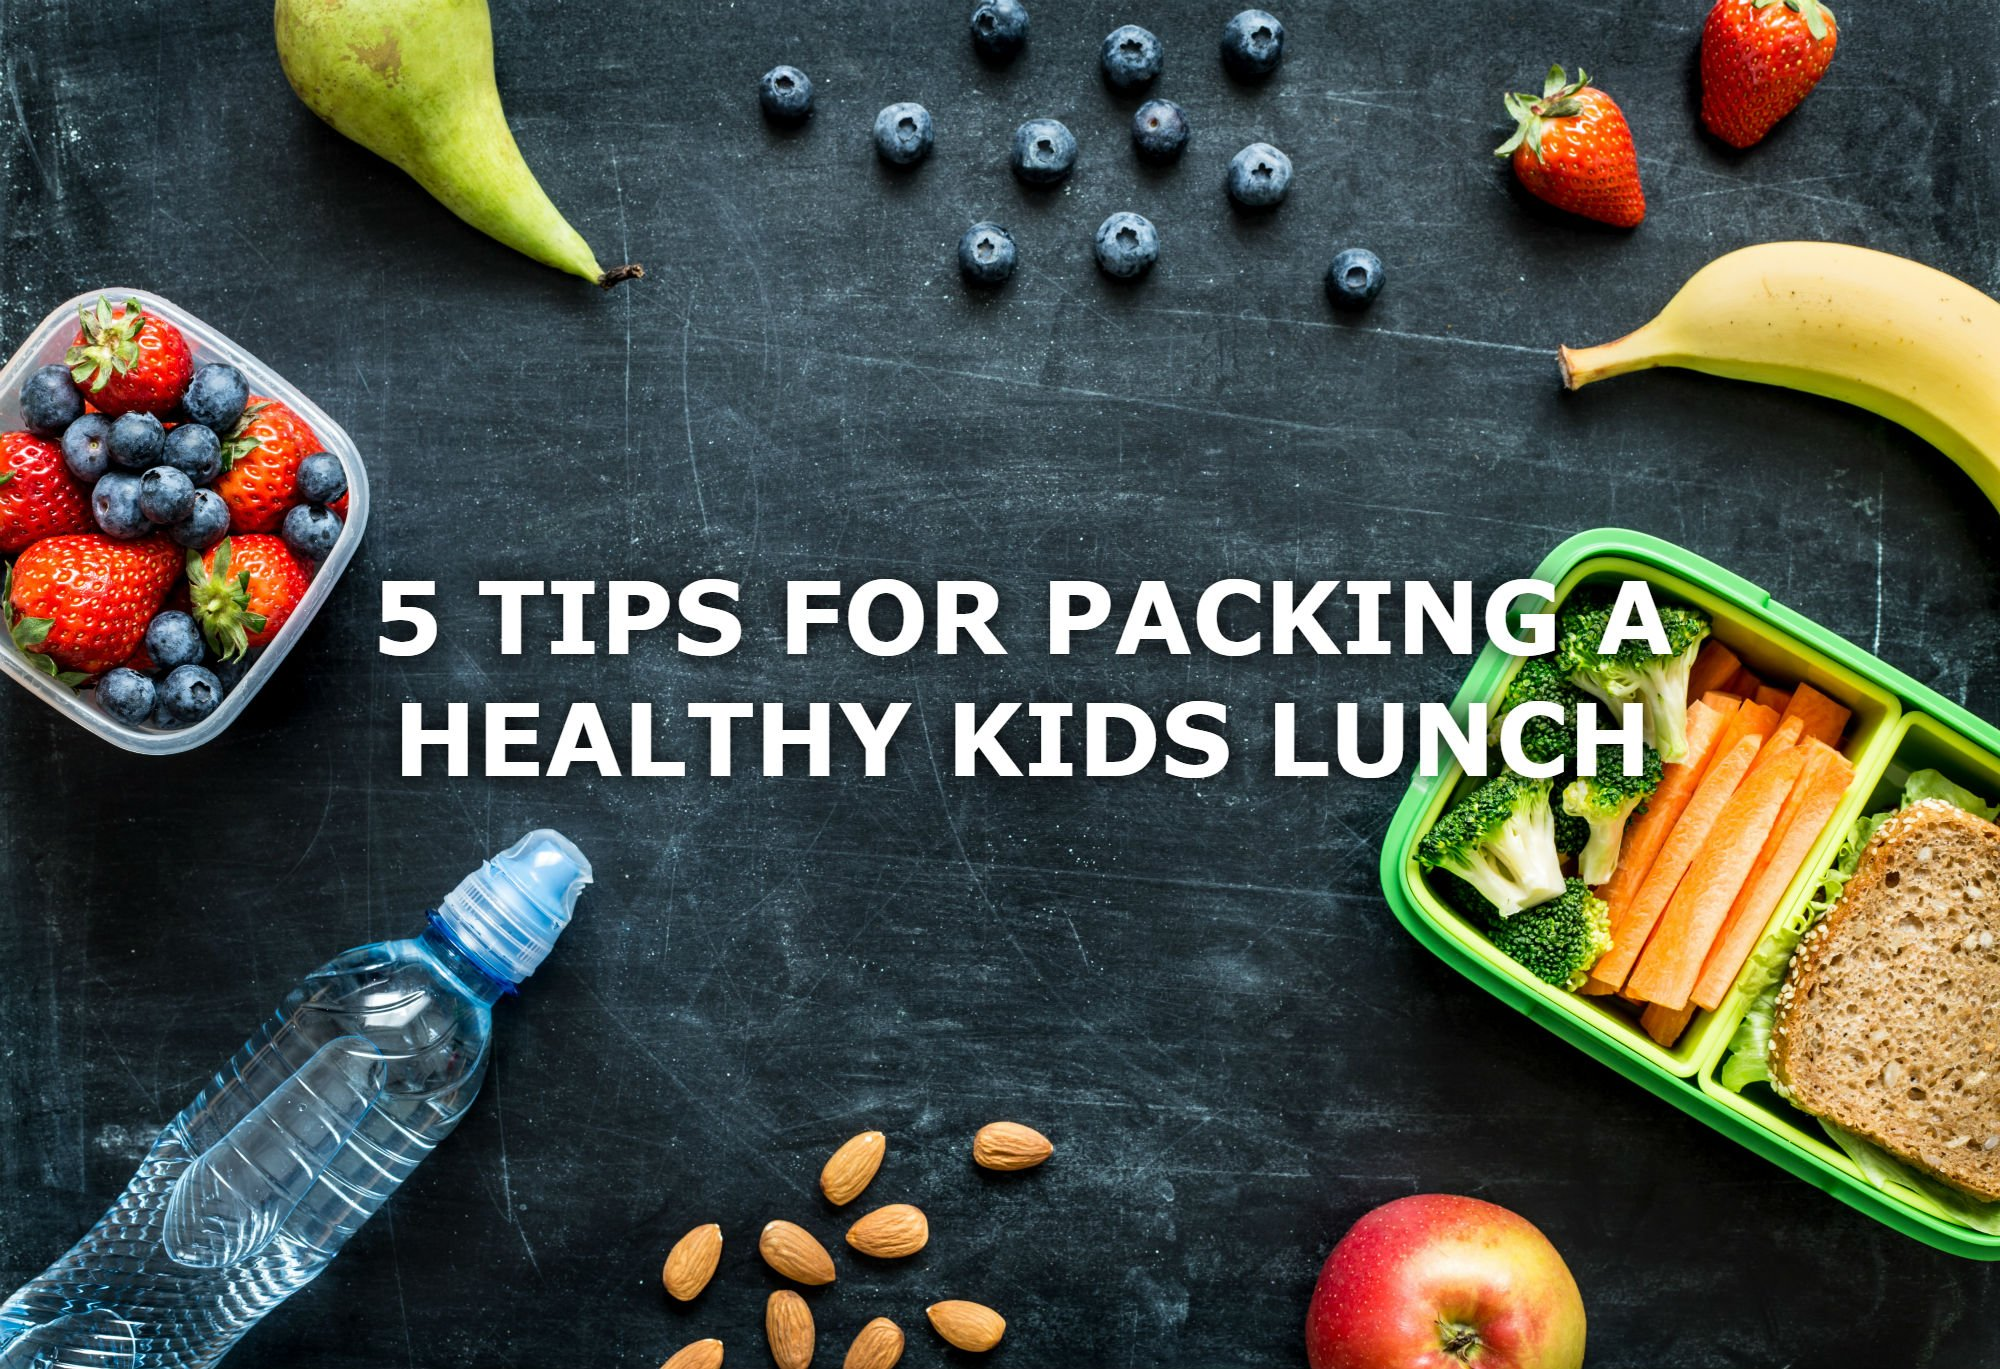 5 HELPFUL TIPS FOR PACKING A HEALTHY KIDS LUNCH